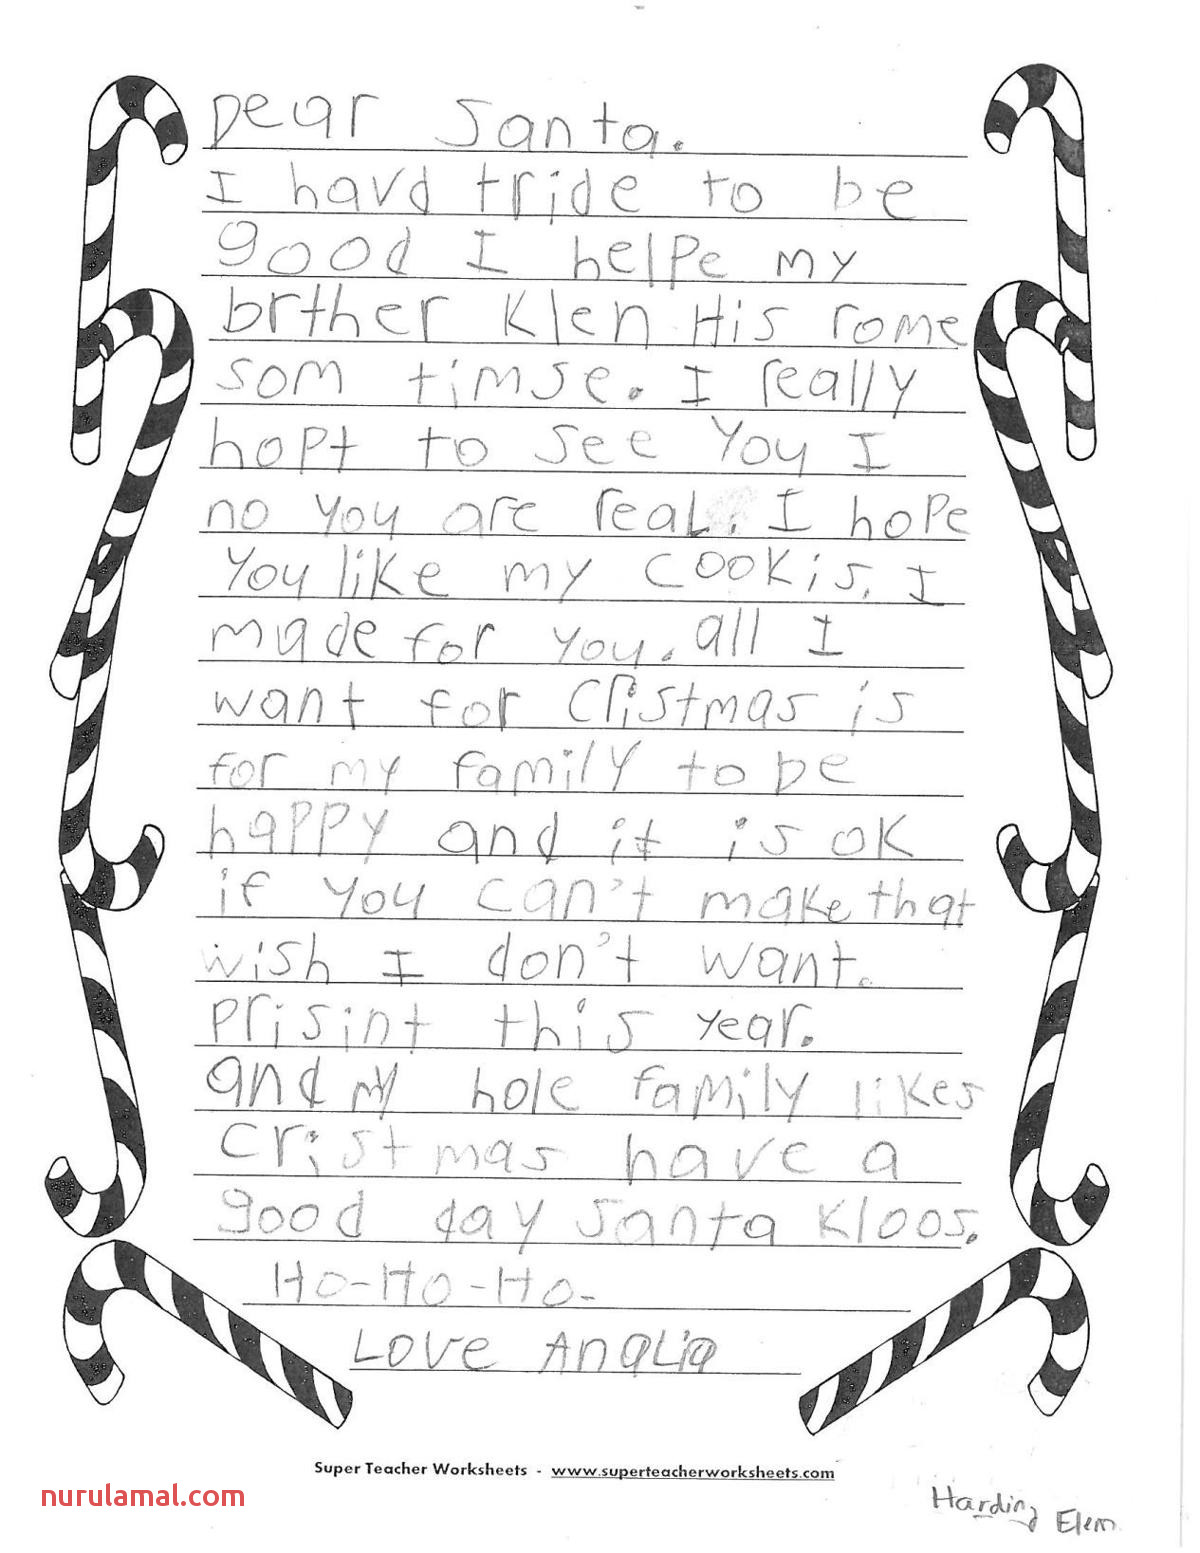 Updated Region Kids Share their Letters to Santa